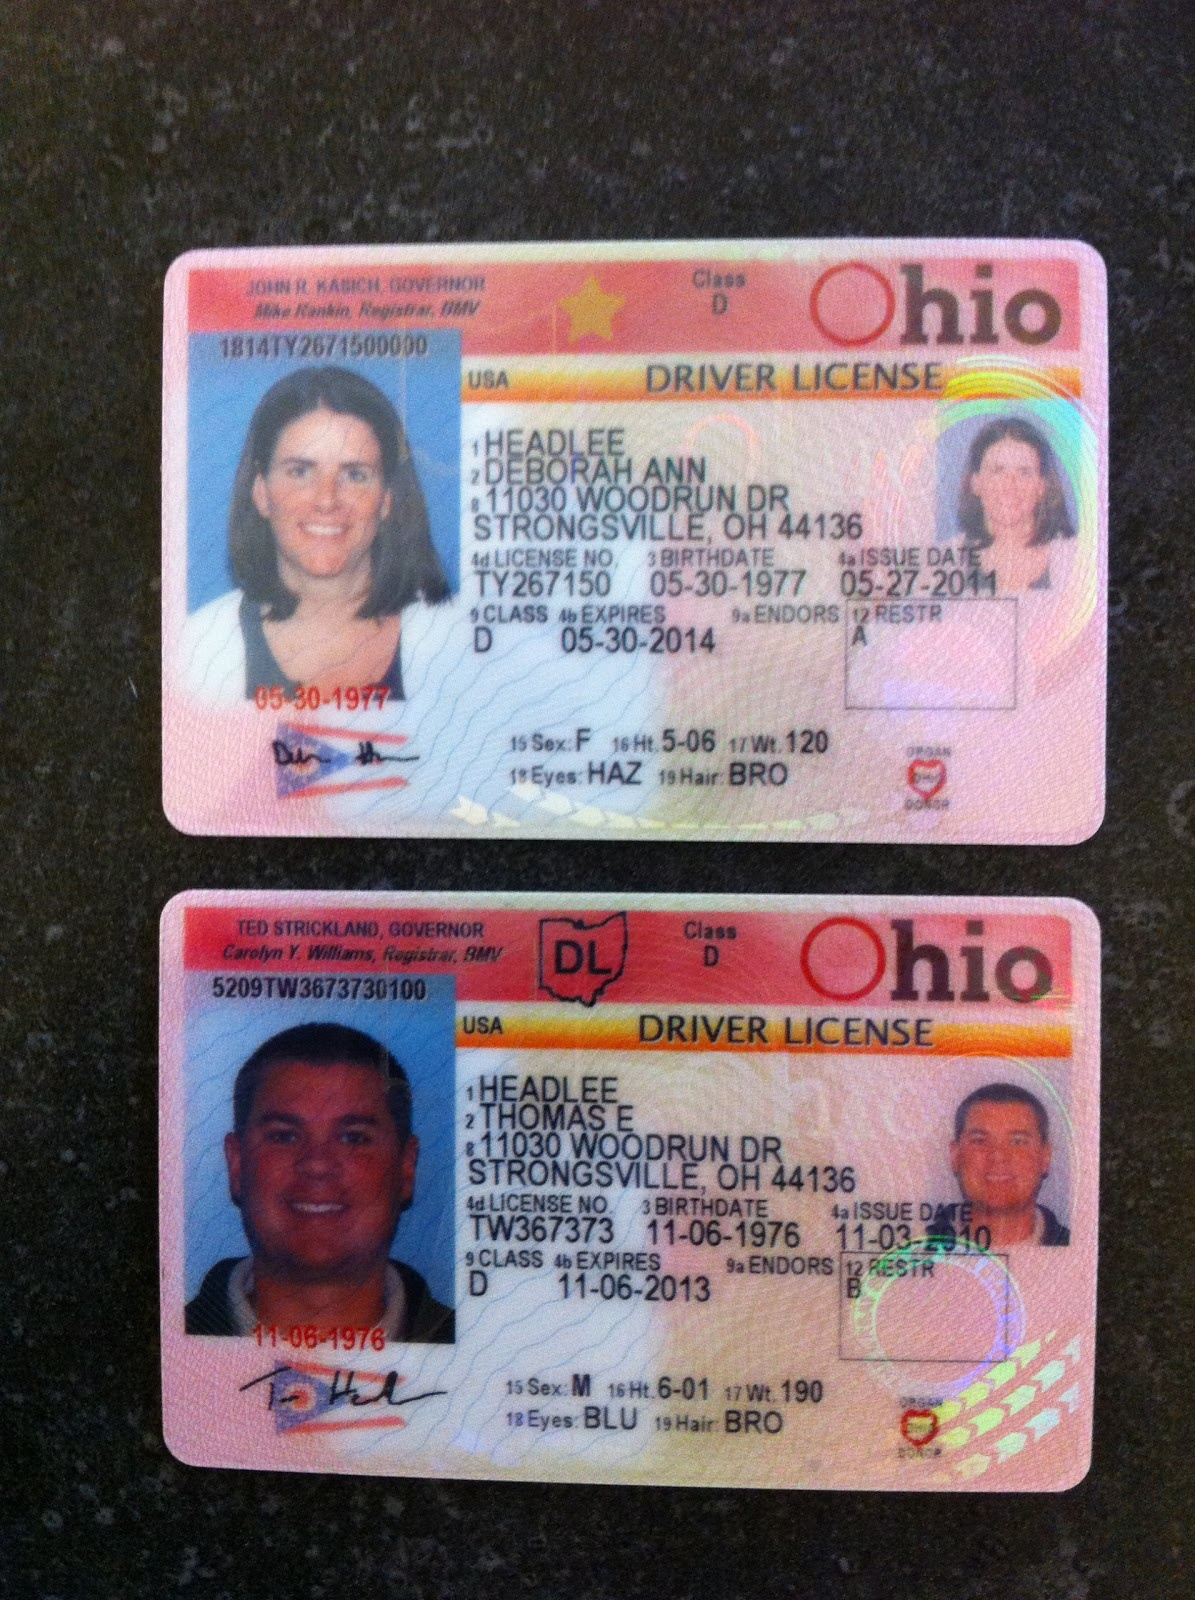 where is issue date on new ohio drivers license